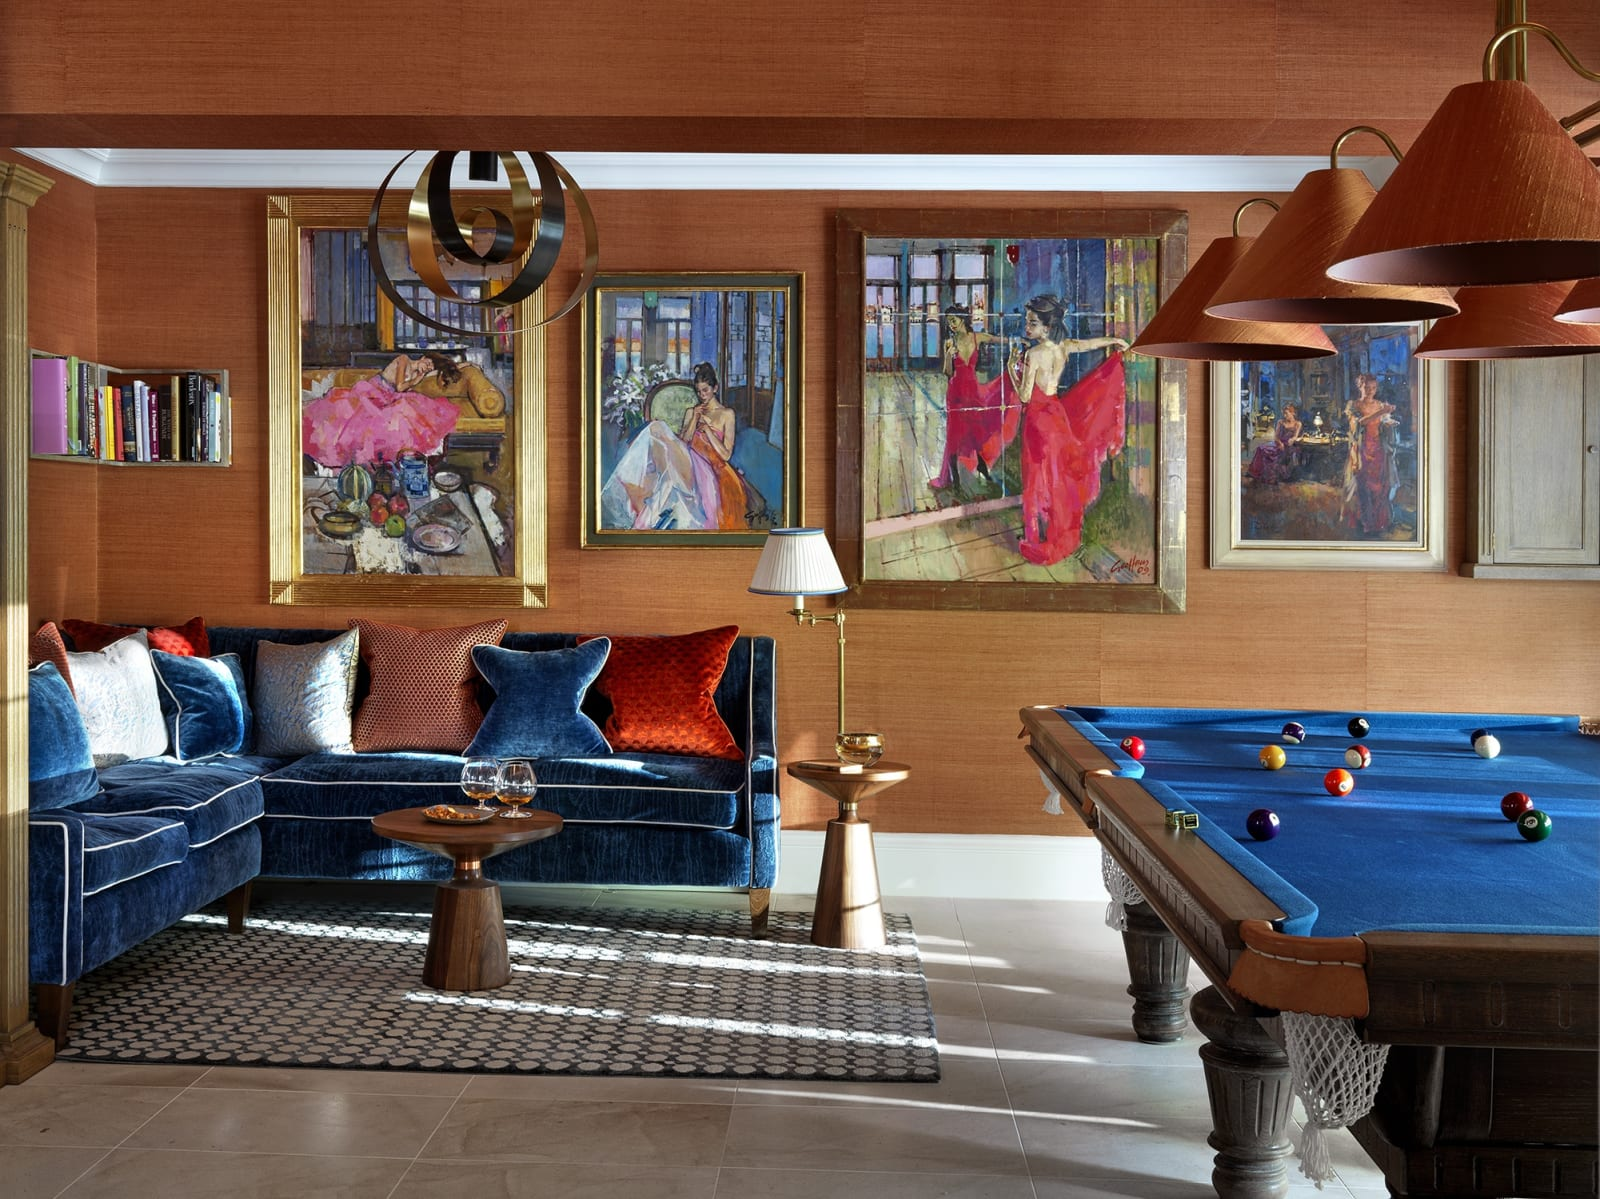 Original paintings by the famous Venetian artist Geoffrey Humphries are the centrepiece for this lively games room